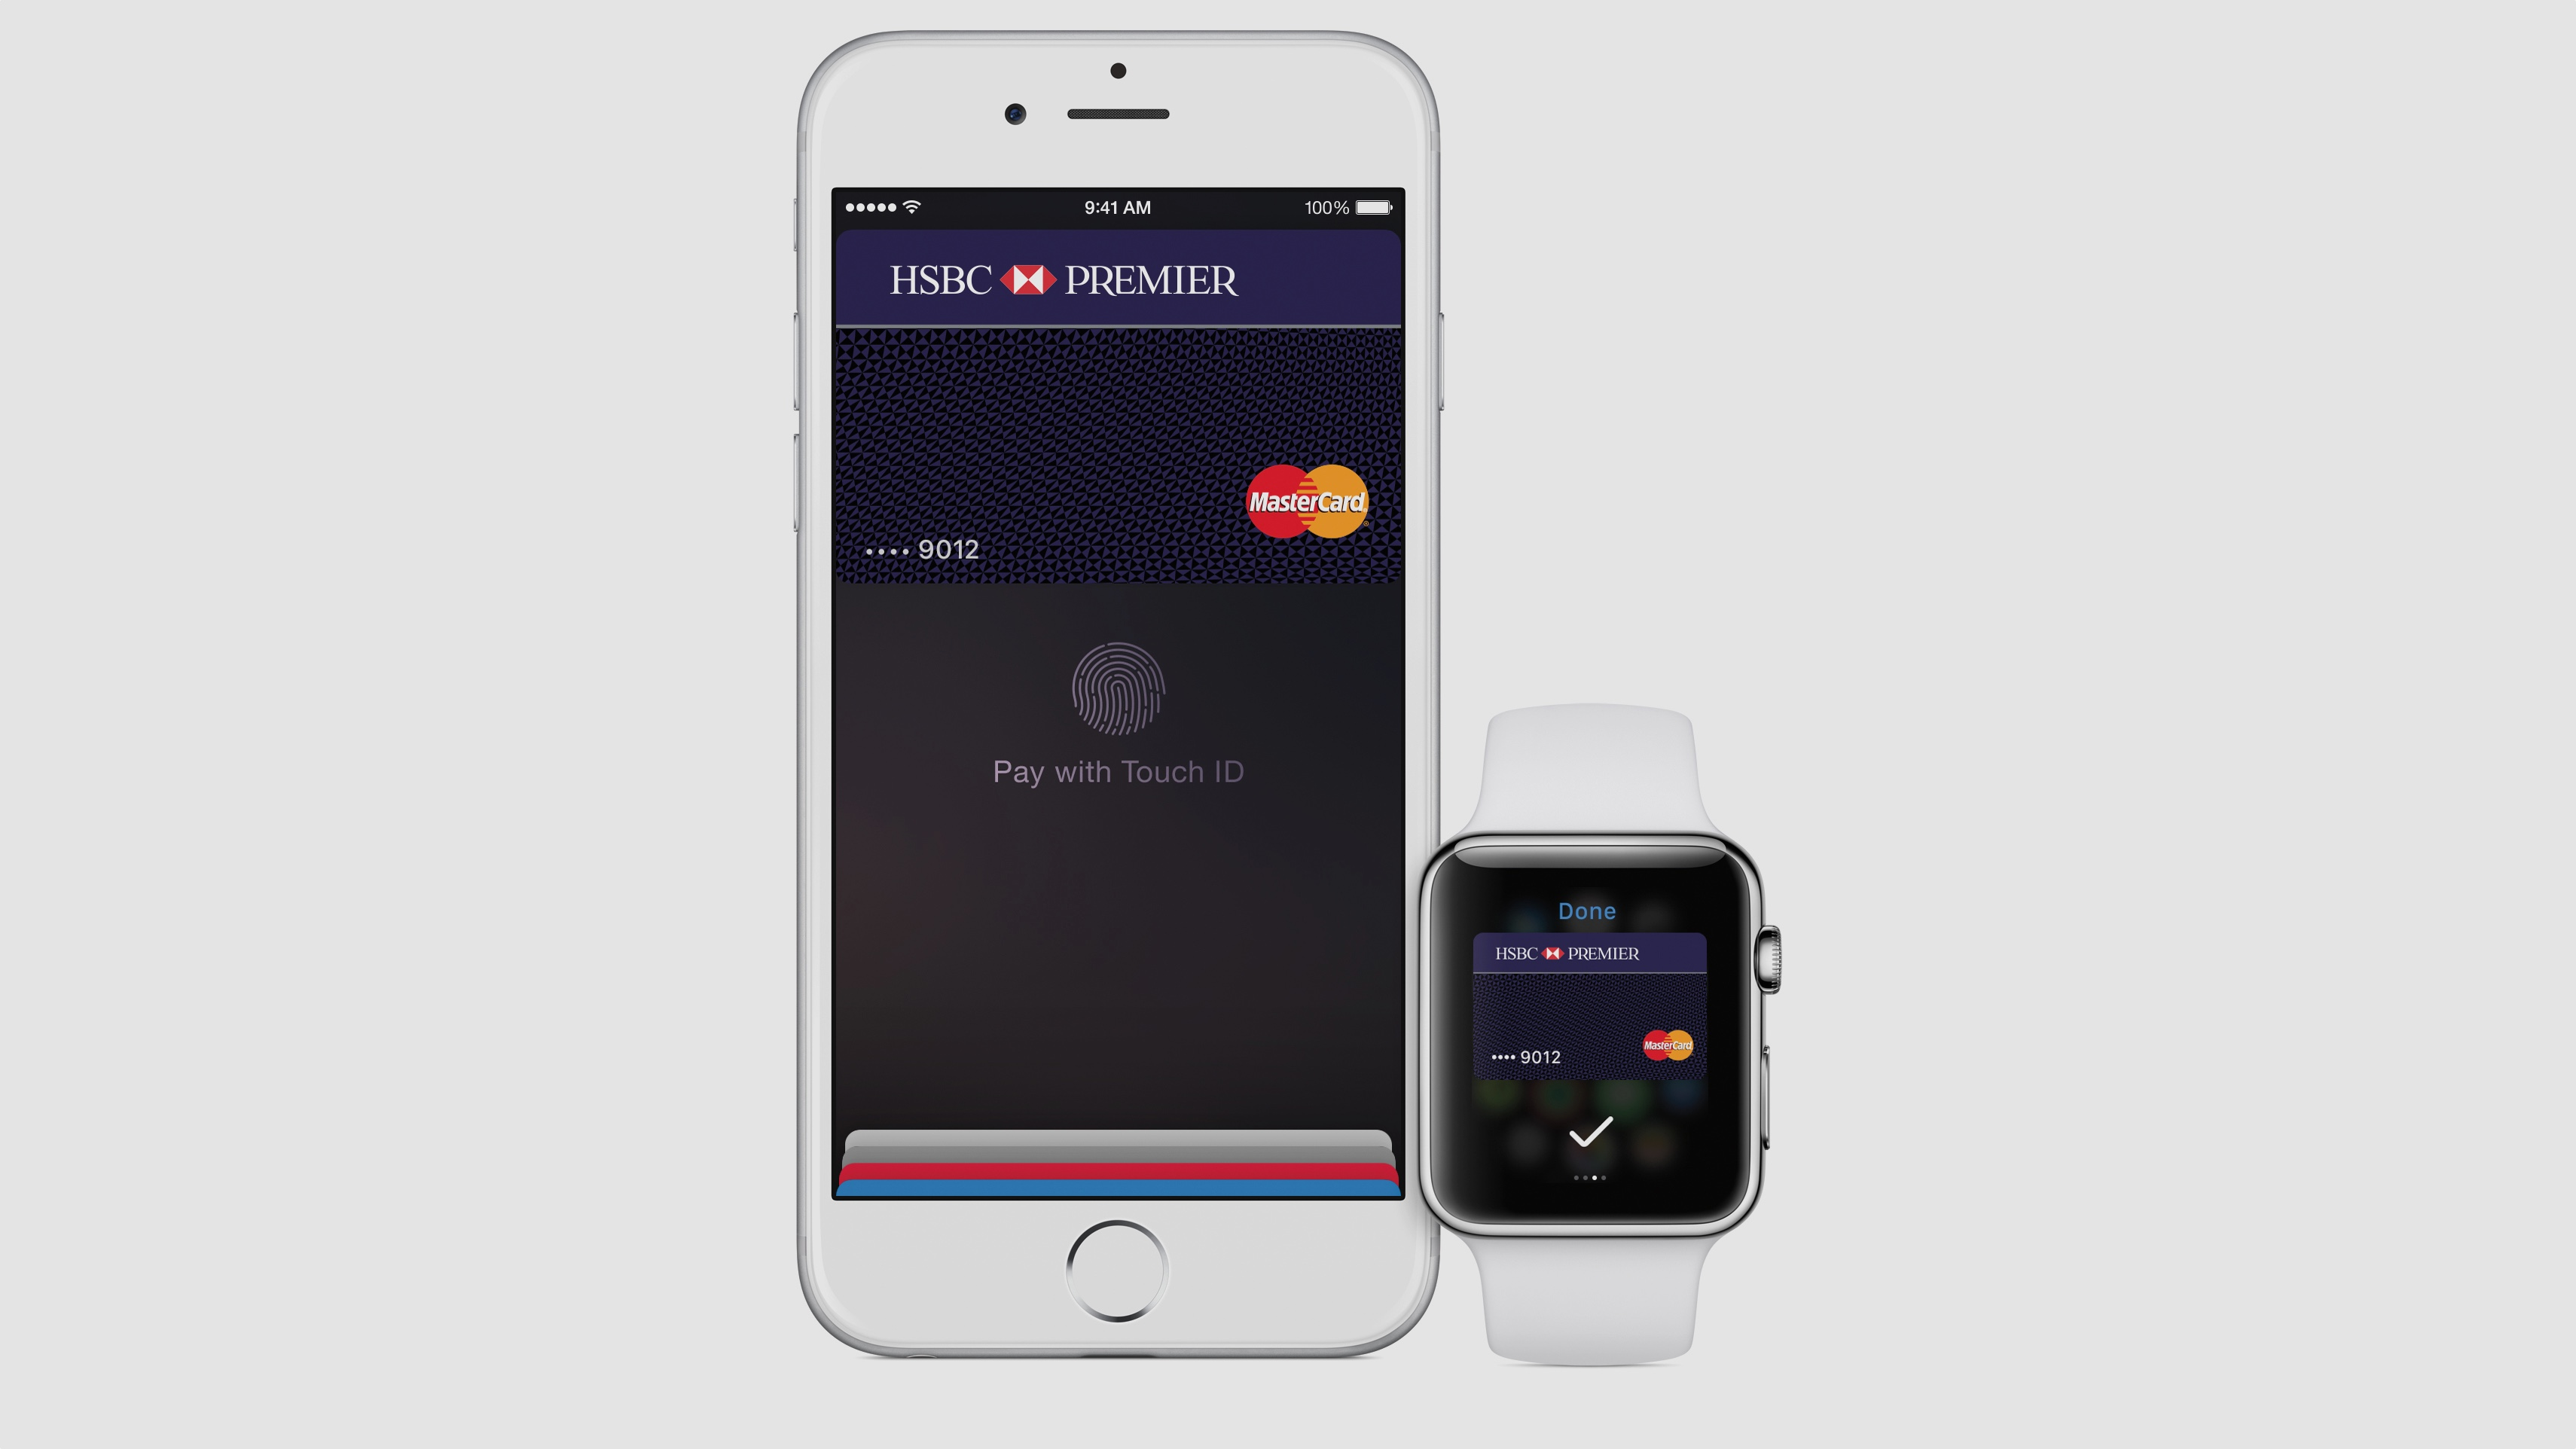 HSBC finally joins Apple Pay